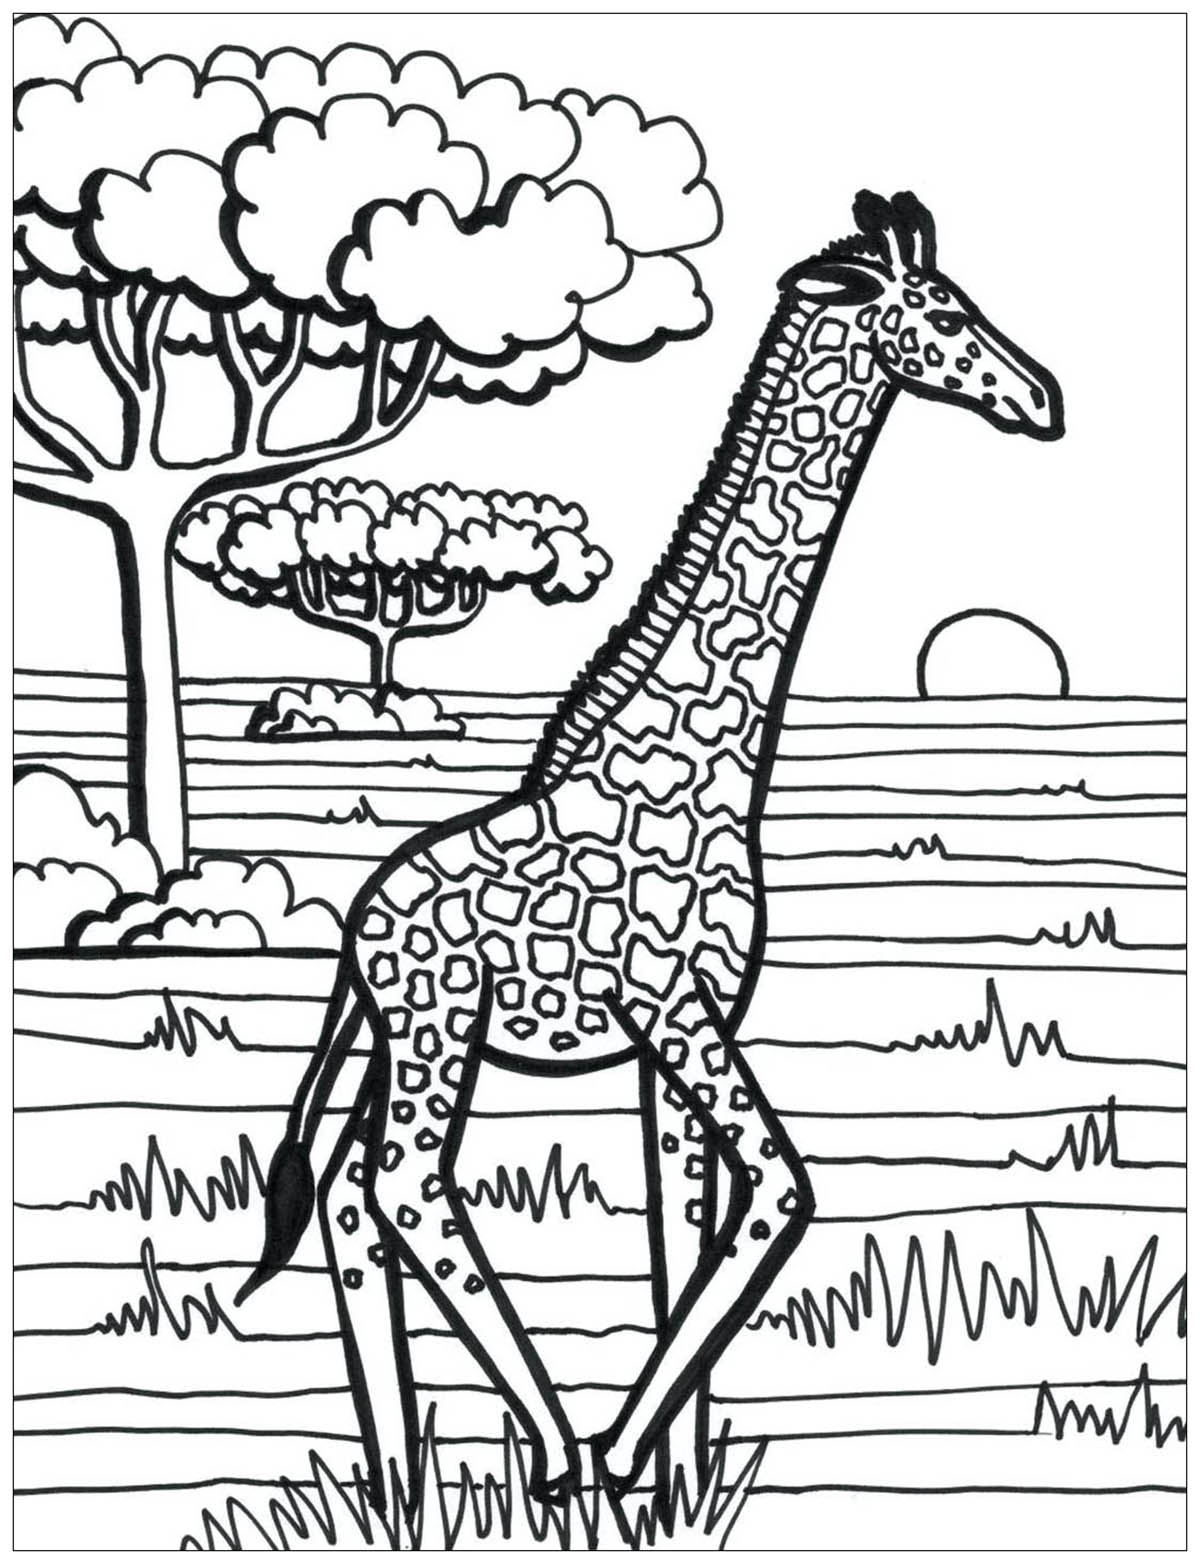 Giraffes to print - Giraffes Kids Coloring Pages